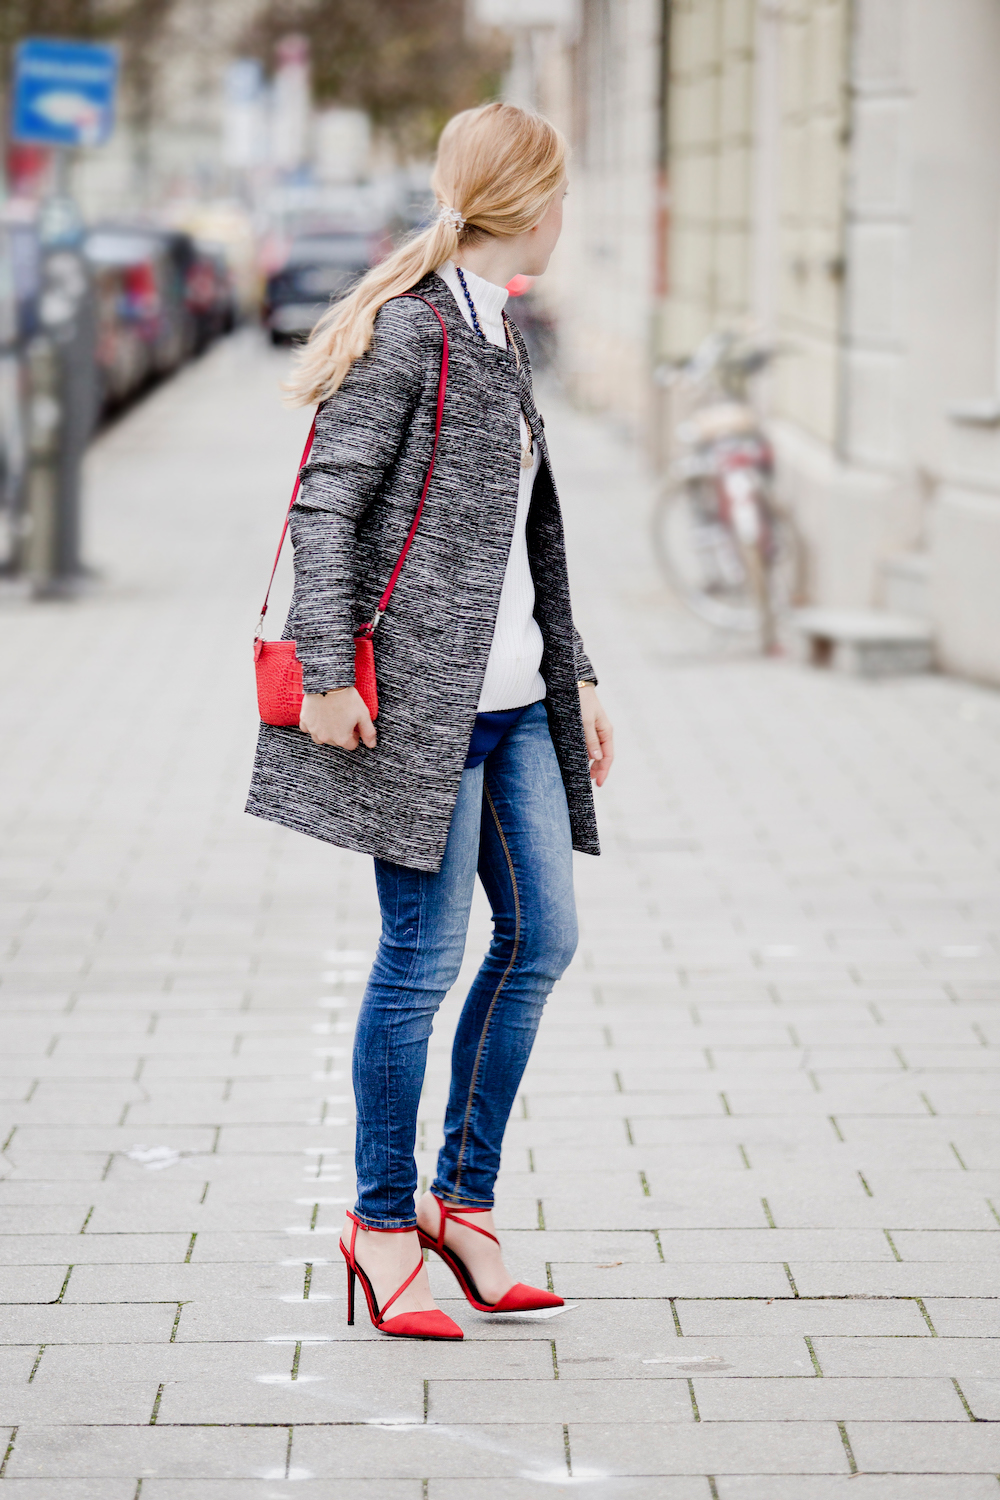 More & More Coat Red pumps | München Modeblog, German Fashion Blog, Fashionblogger, new trends